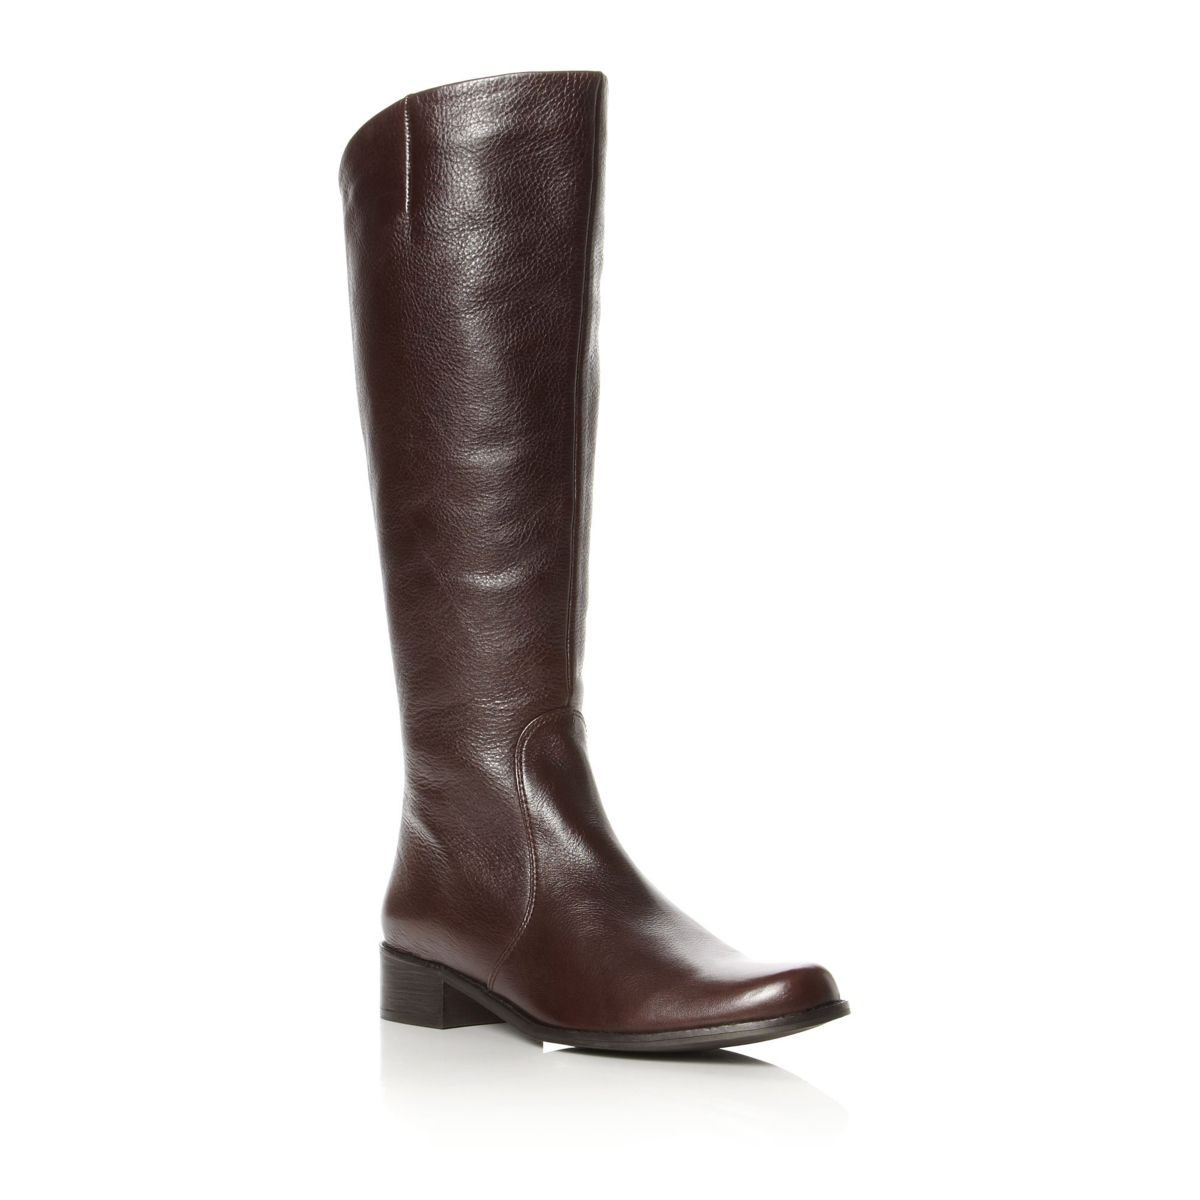 NEW-DUNE-LADIES-TOLWORTH-WOMENS-LEATHER-LOW-HEEL-LONG-RIDING-BOOTS-SIZE-3-8-UK